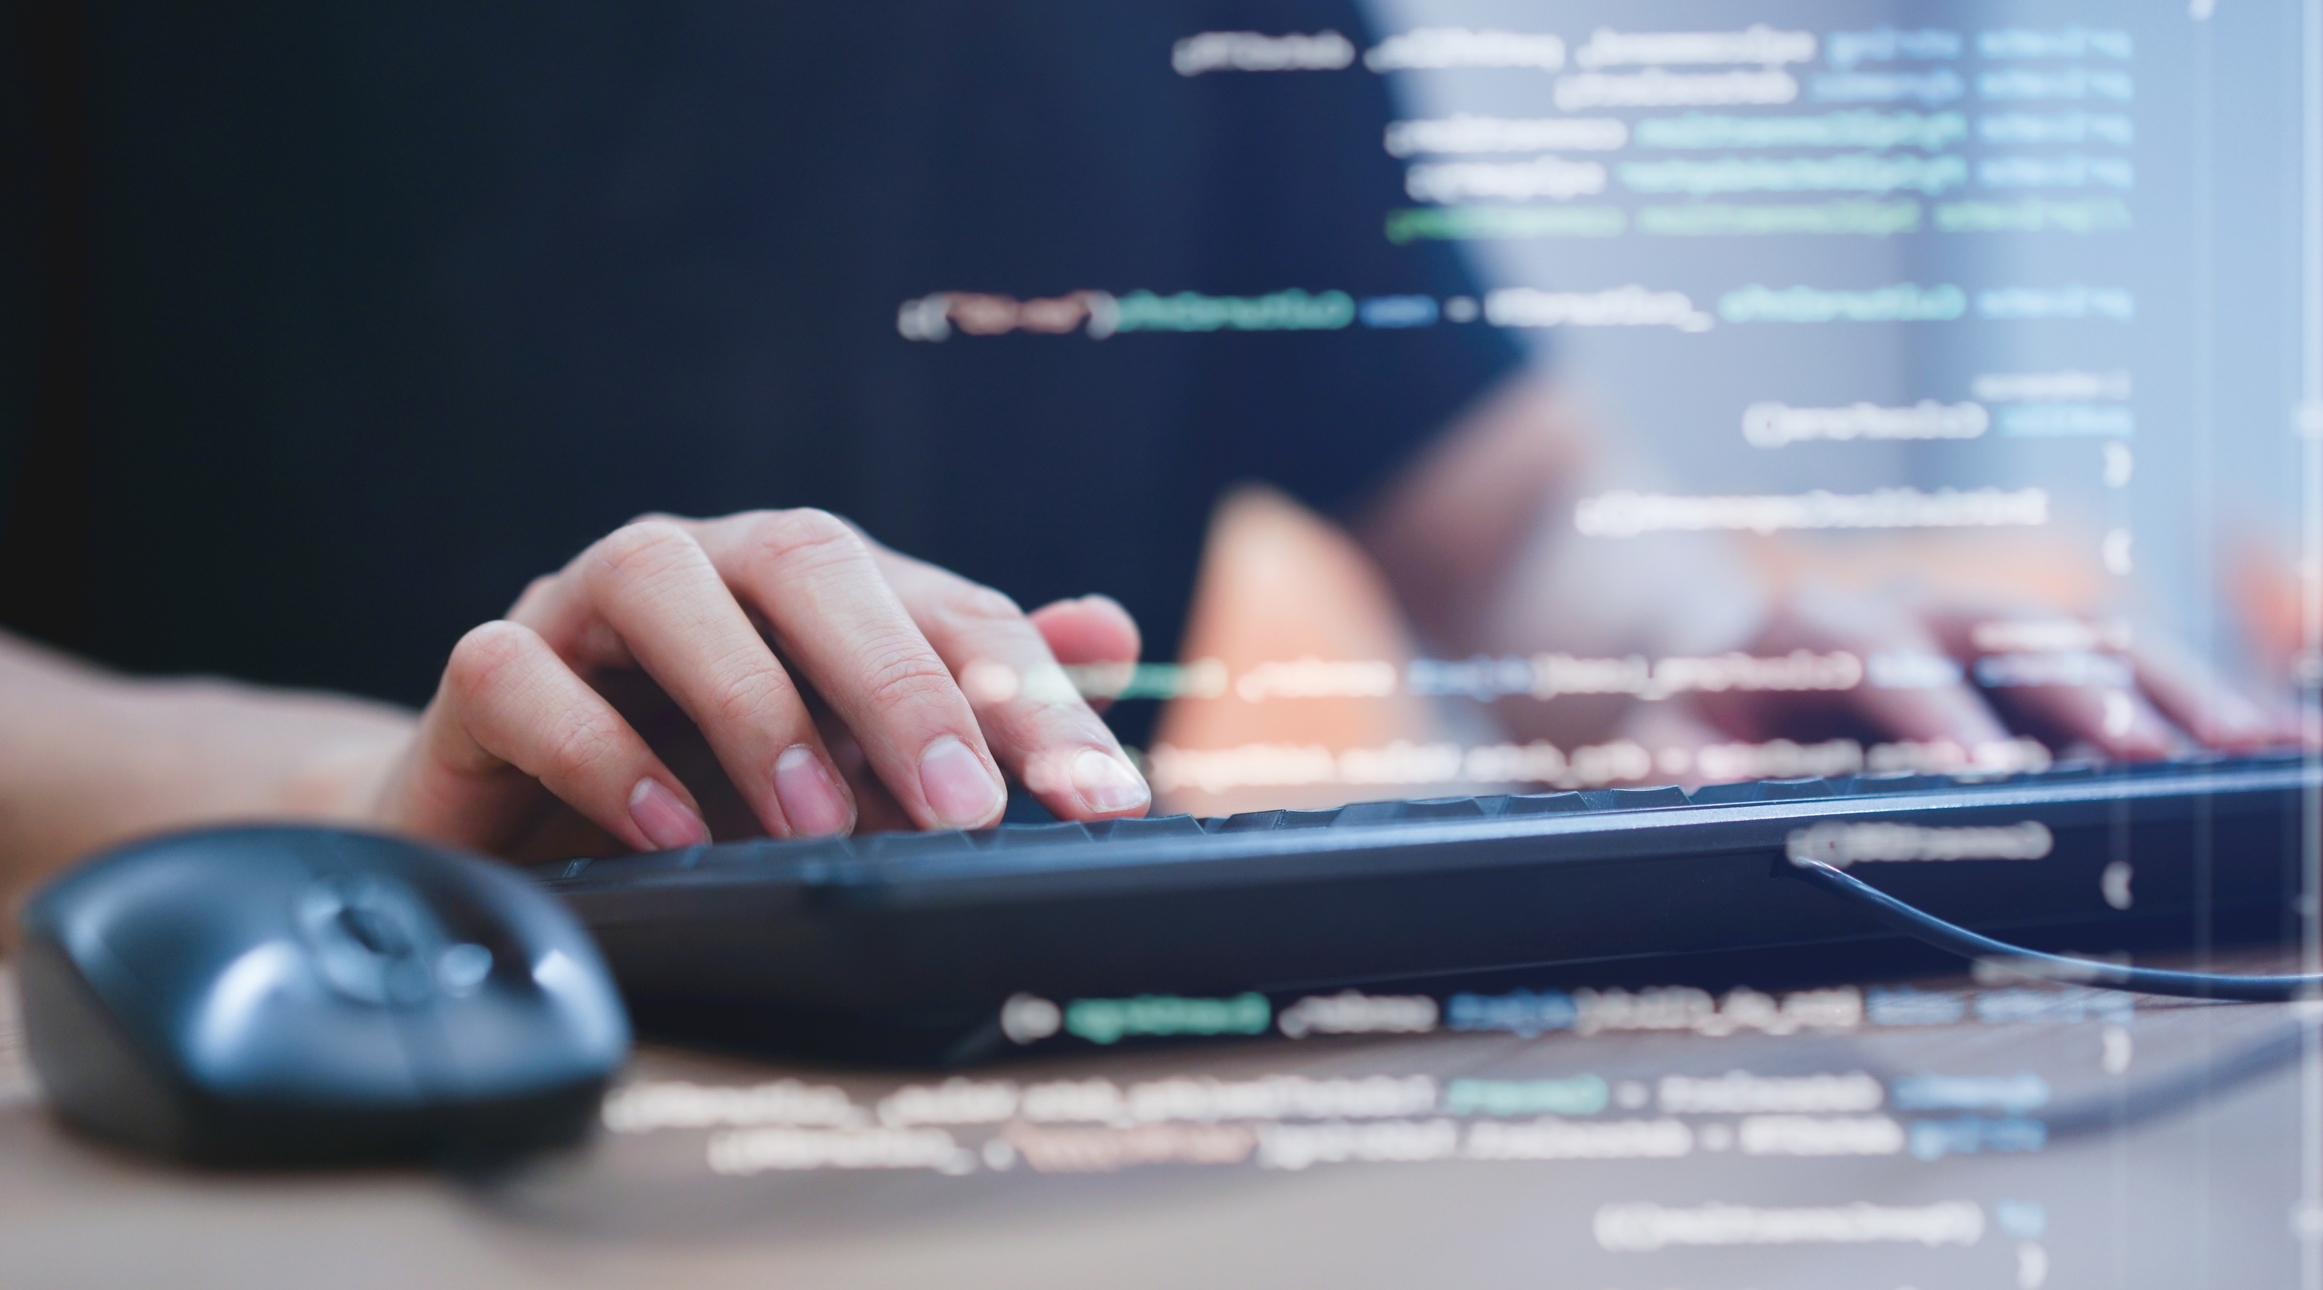 hands typing on keyboard with code overlaid over top image